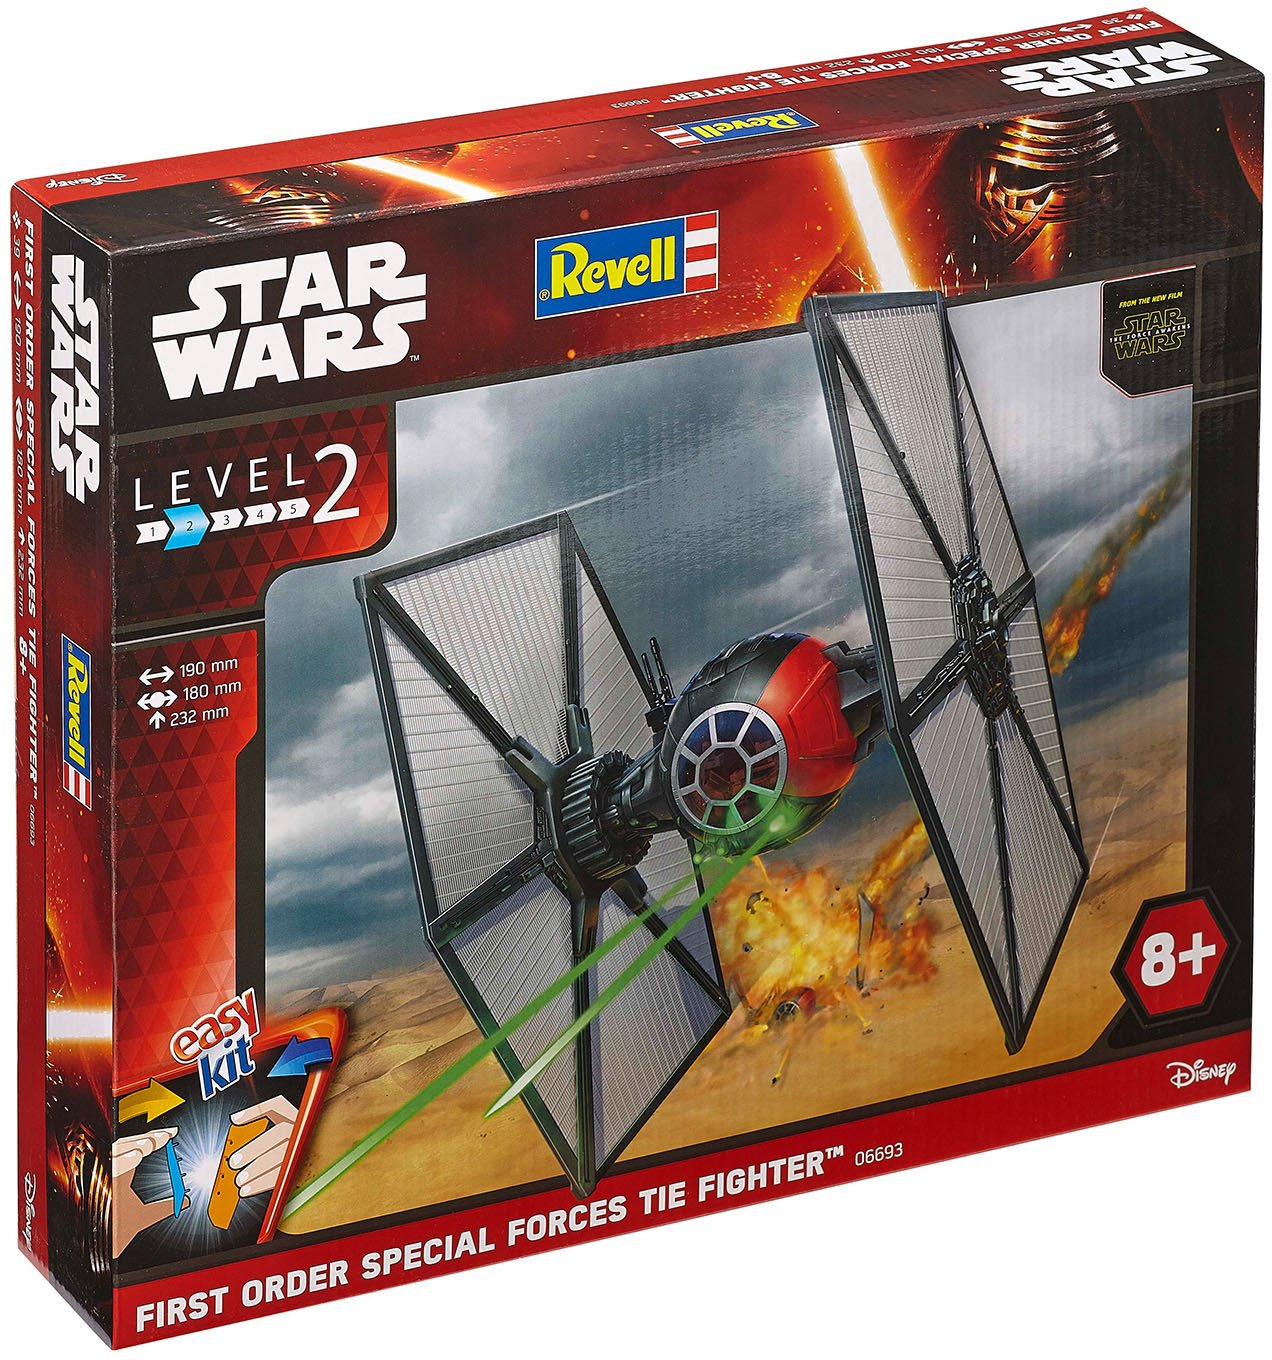 Revell Star Wars easykit amazon